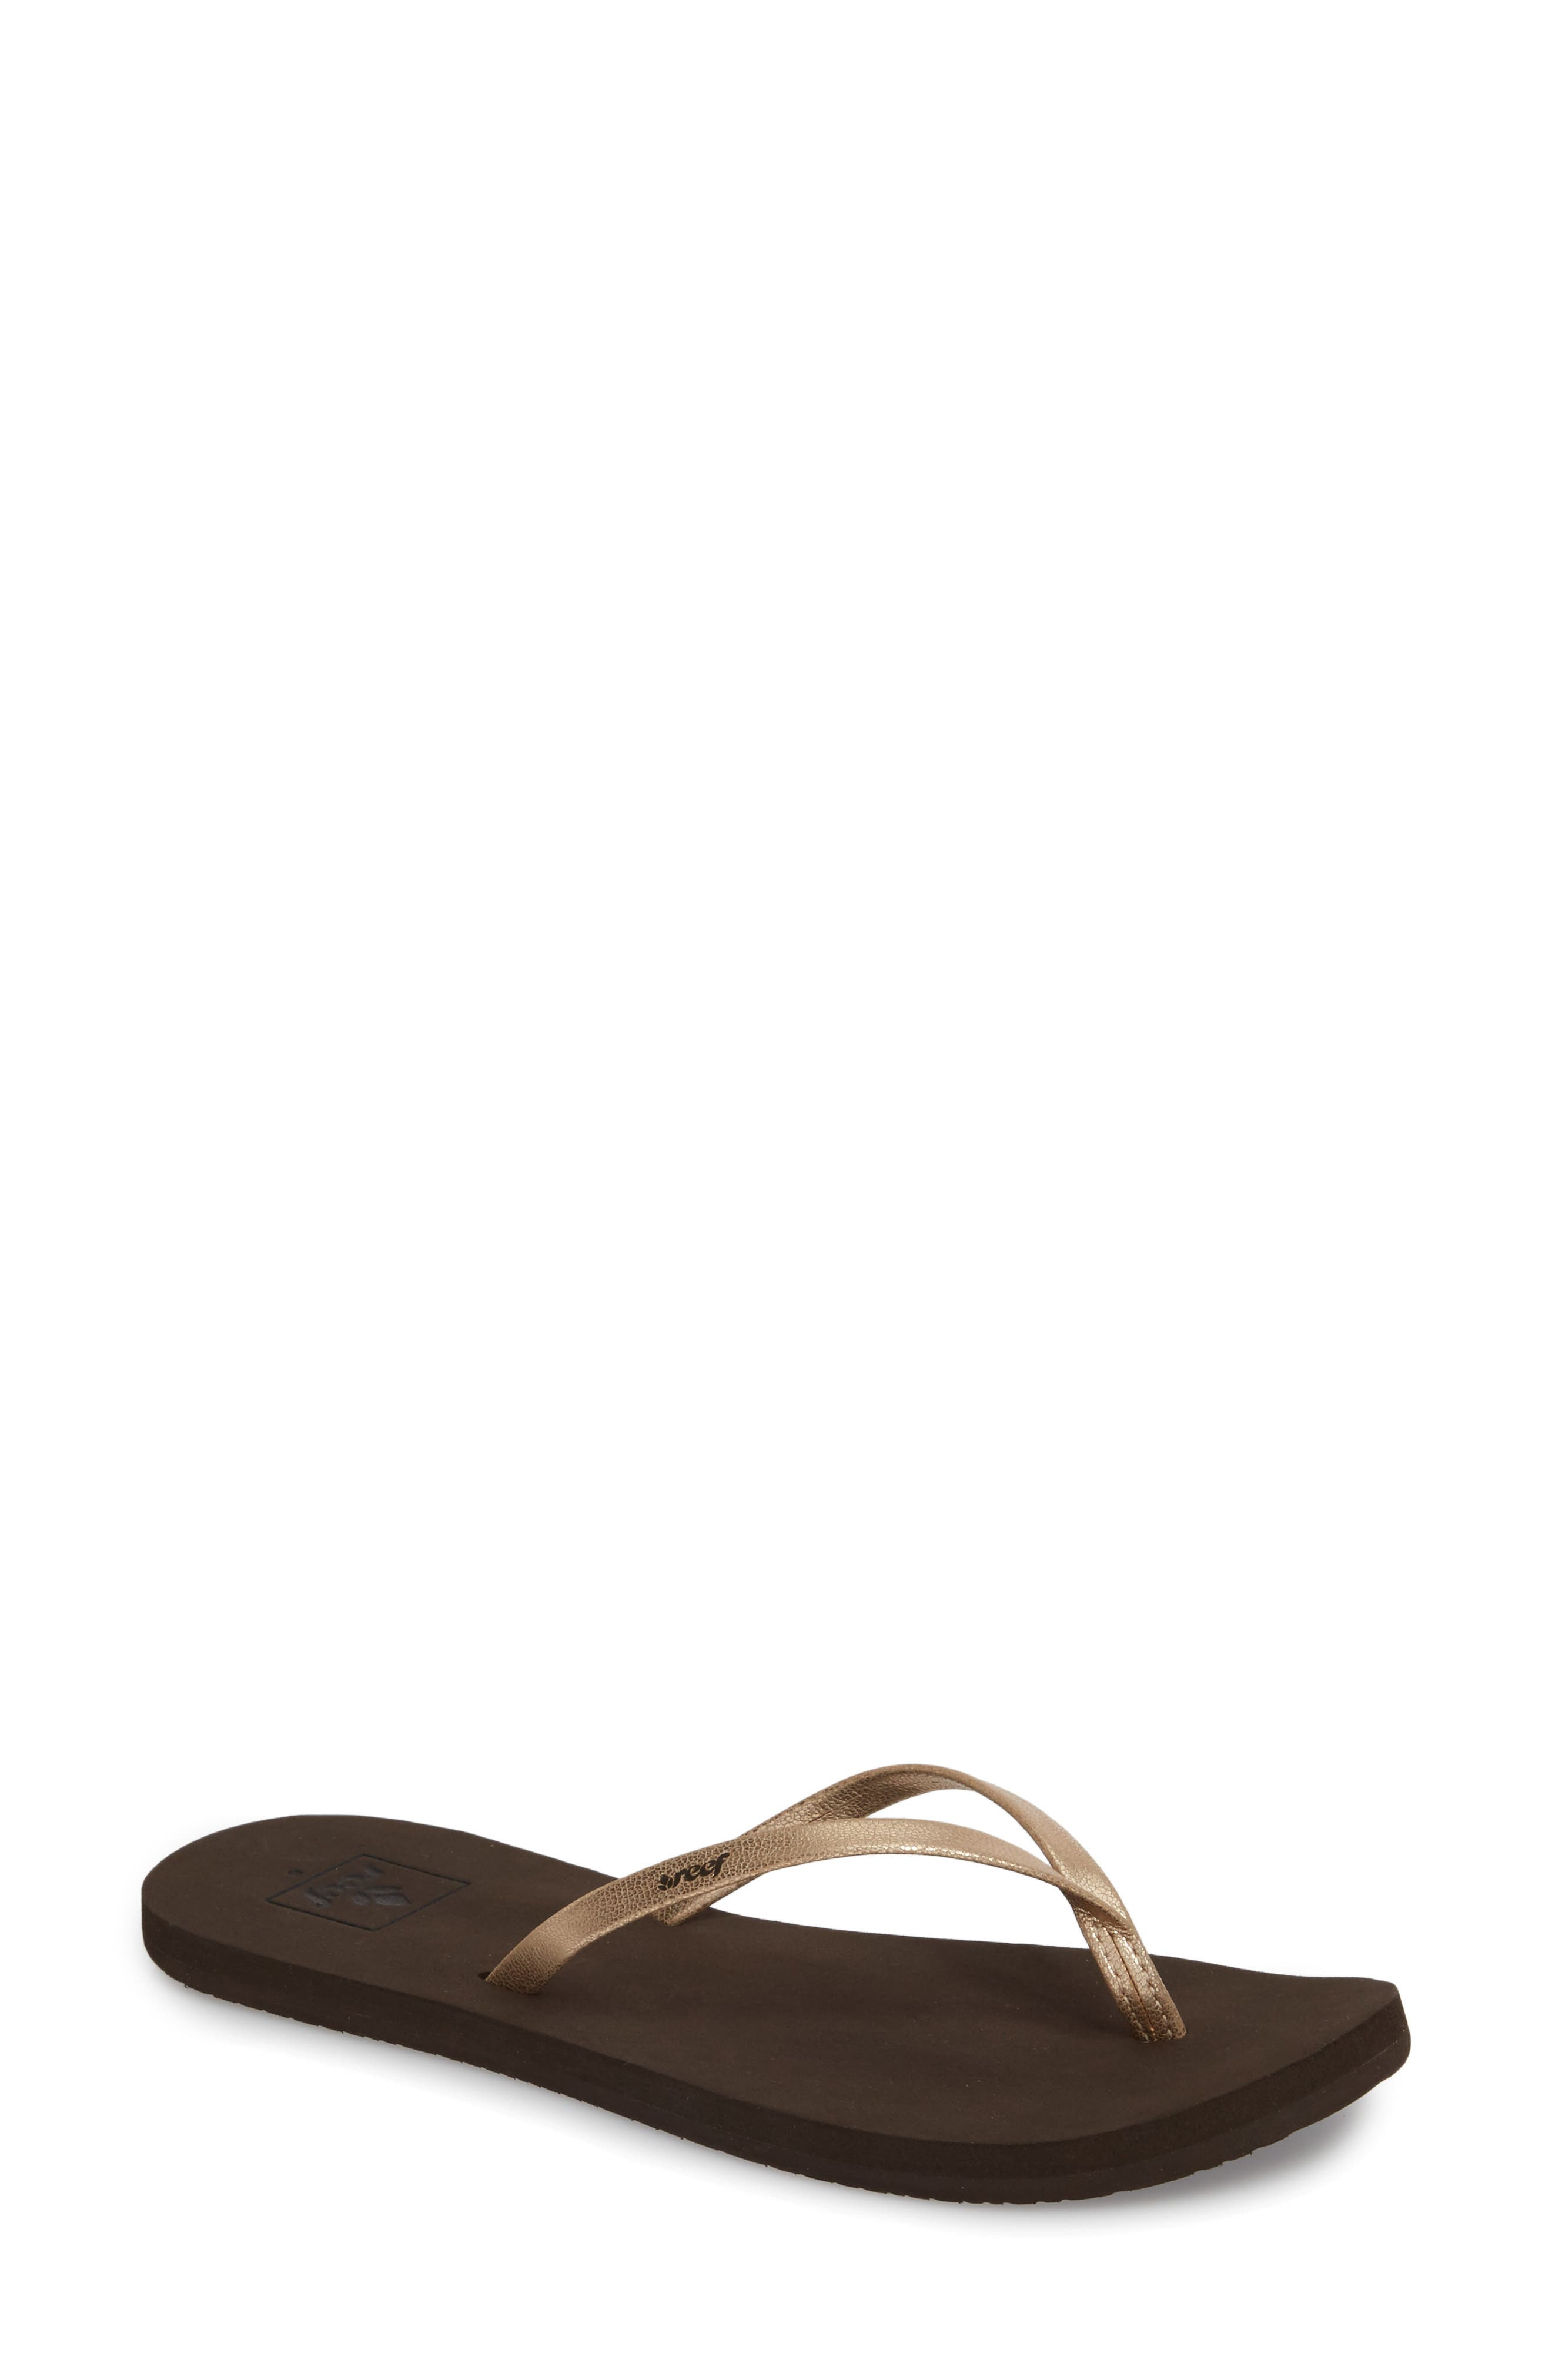 Bliss Nights Flip Flop,                             Main thumbnail 1, color,